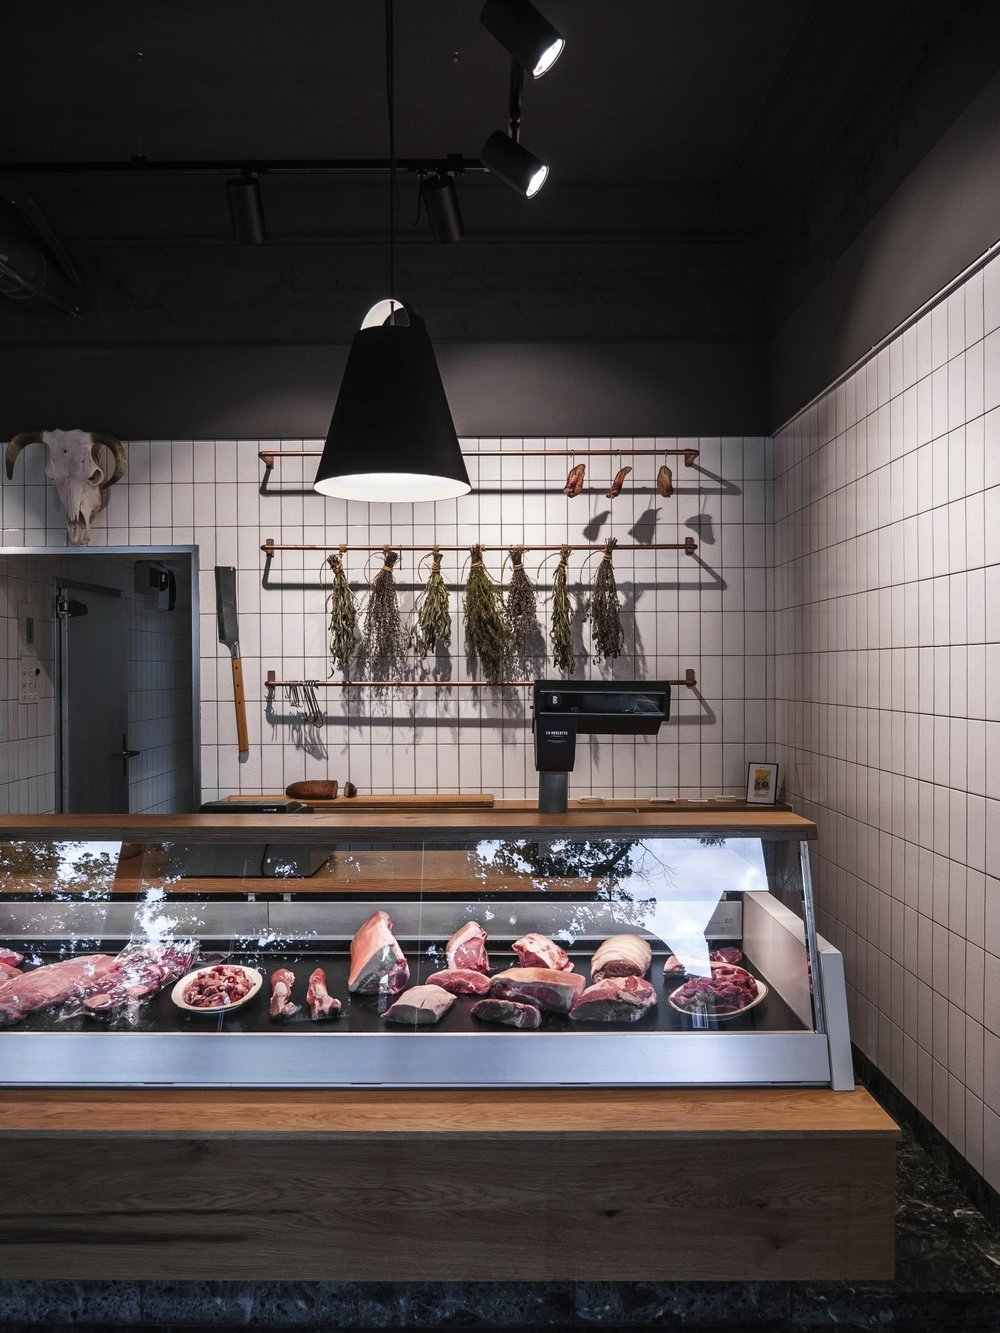 SHOP_  LA BOULOTTE.  #Meat #NoseToTail #Butcher #Tattoo    https://www.laboulotte.ch